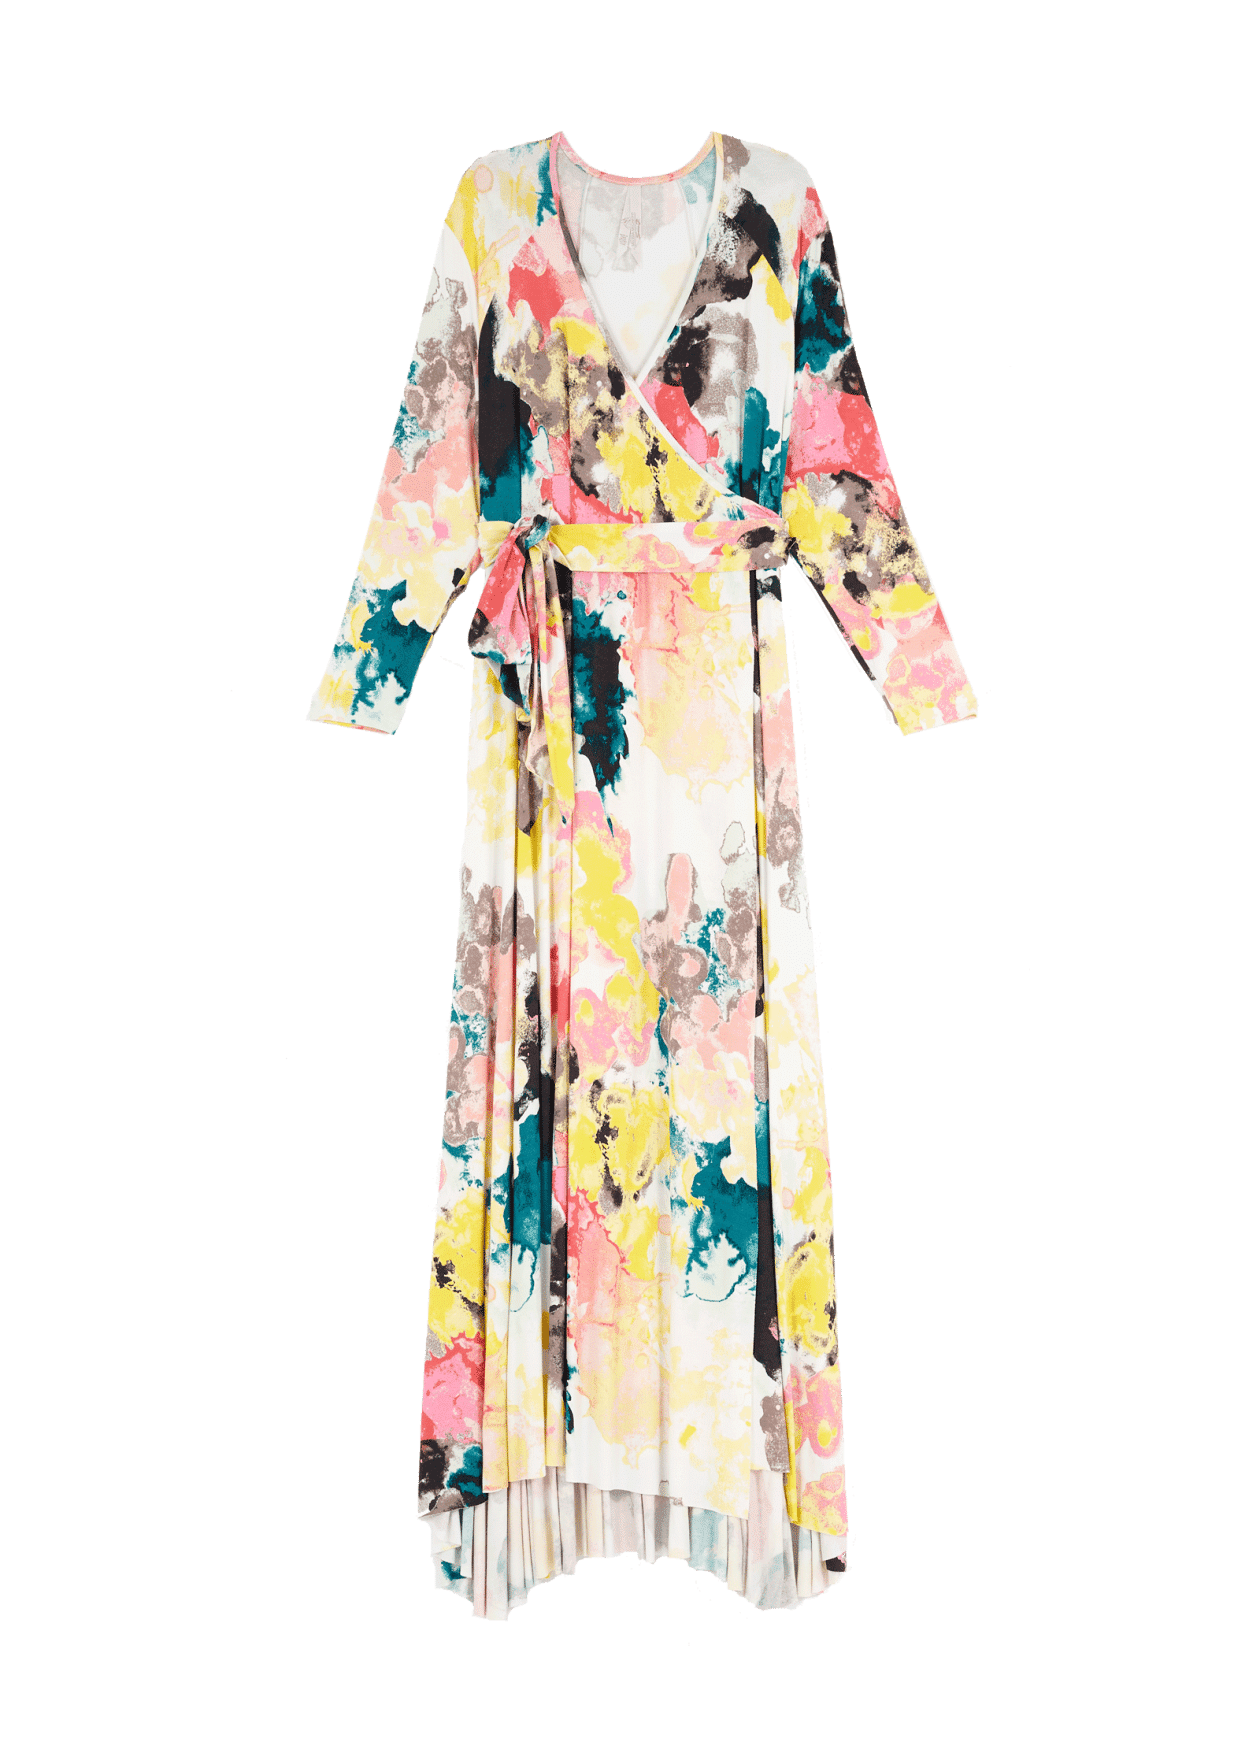 Painted Cloud Wrap Dress at MelissaMcCarthy